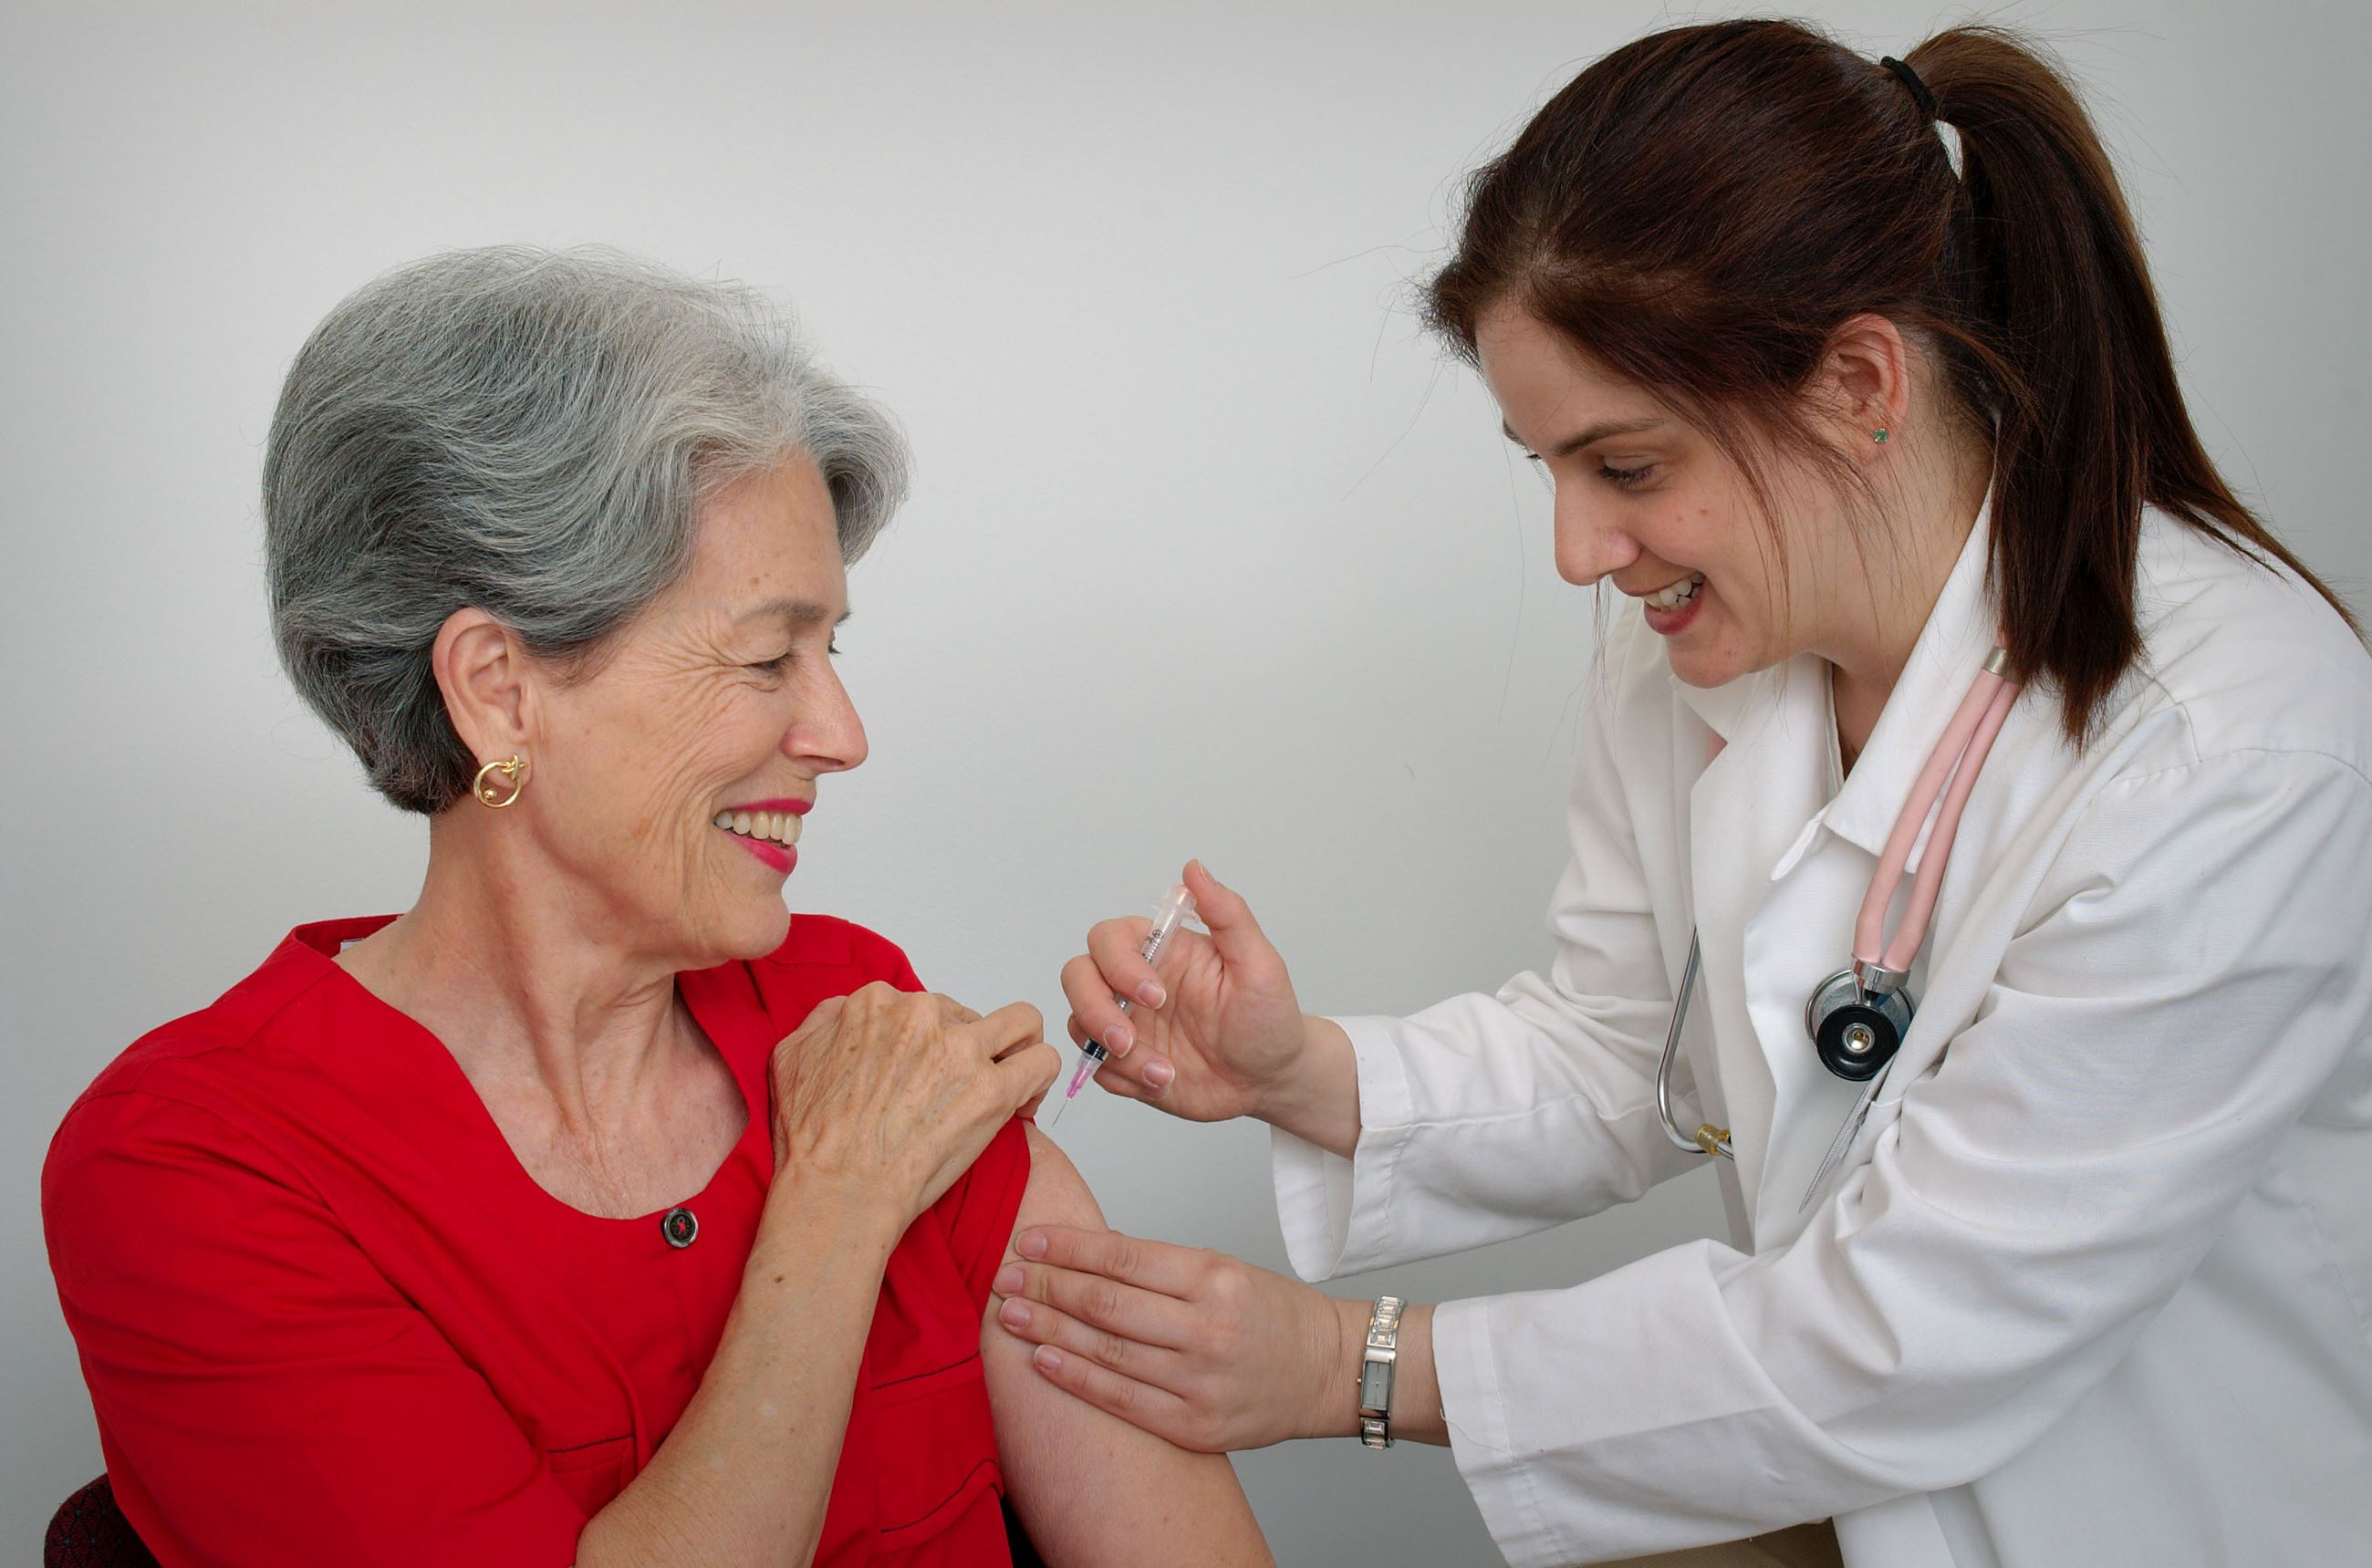 CDC photo of an adult woman receiving a vaccination from a nurse